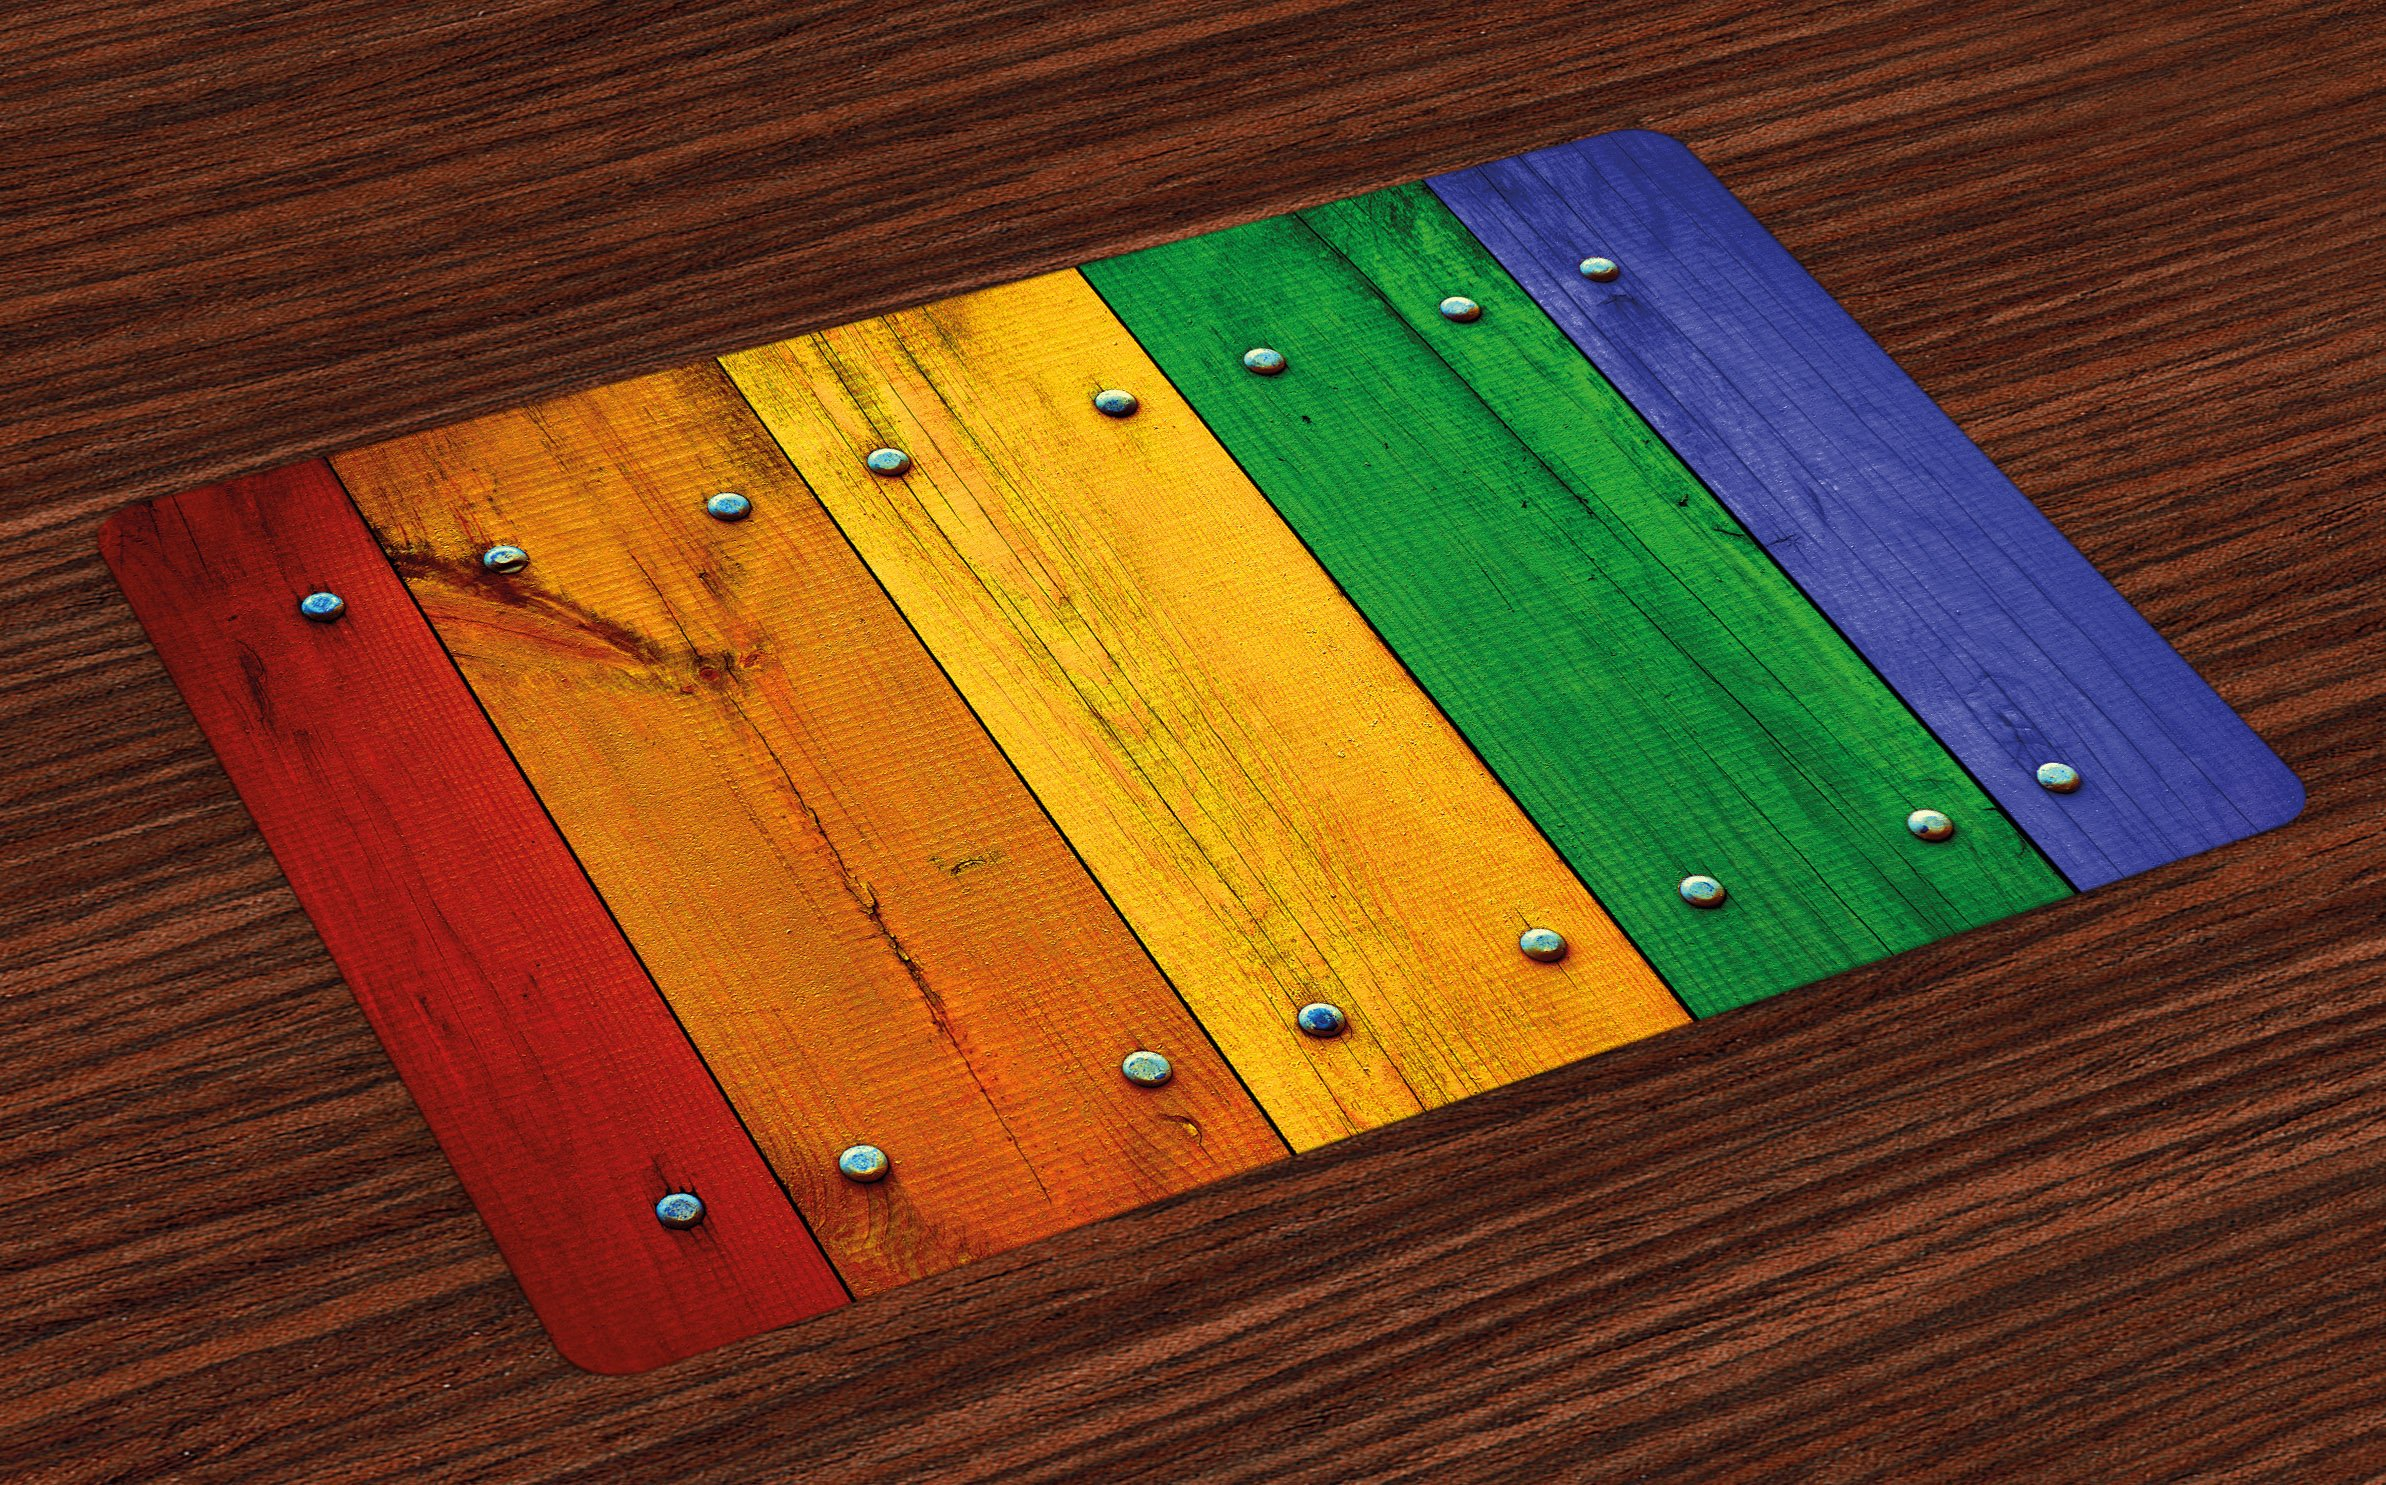 Lunarable Modern Place Mats Set of 4, Rainbow Colored Red Marigold Green and Blue Painted Woods Farm Door Image Print, Washable Fabric Placemats for Dining Room Kitchen Table Decoration, Multicolor